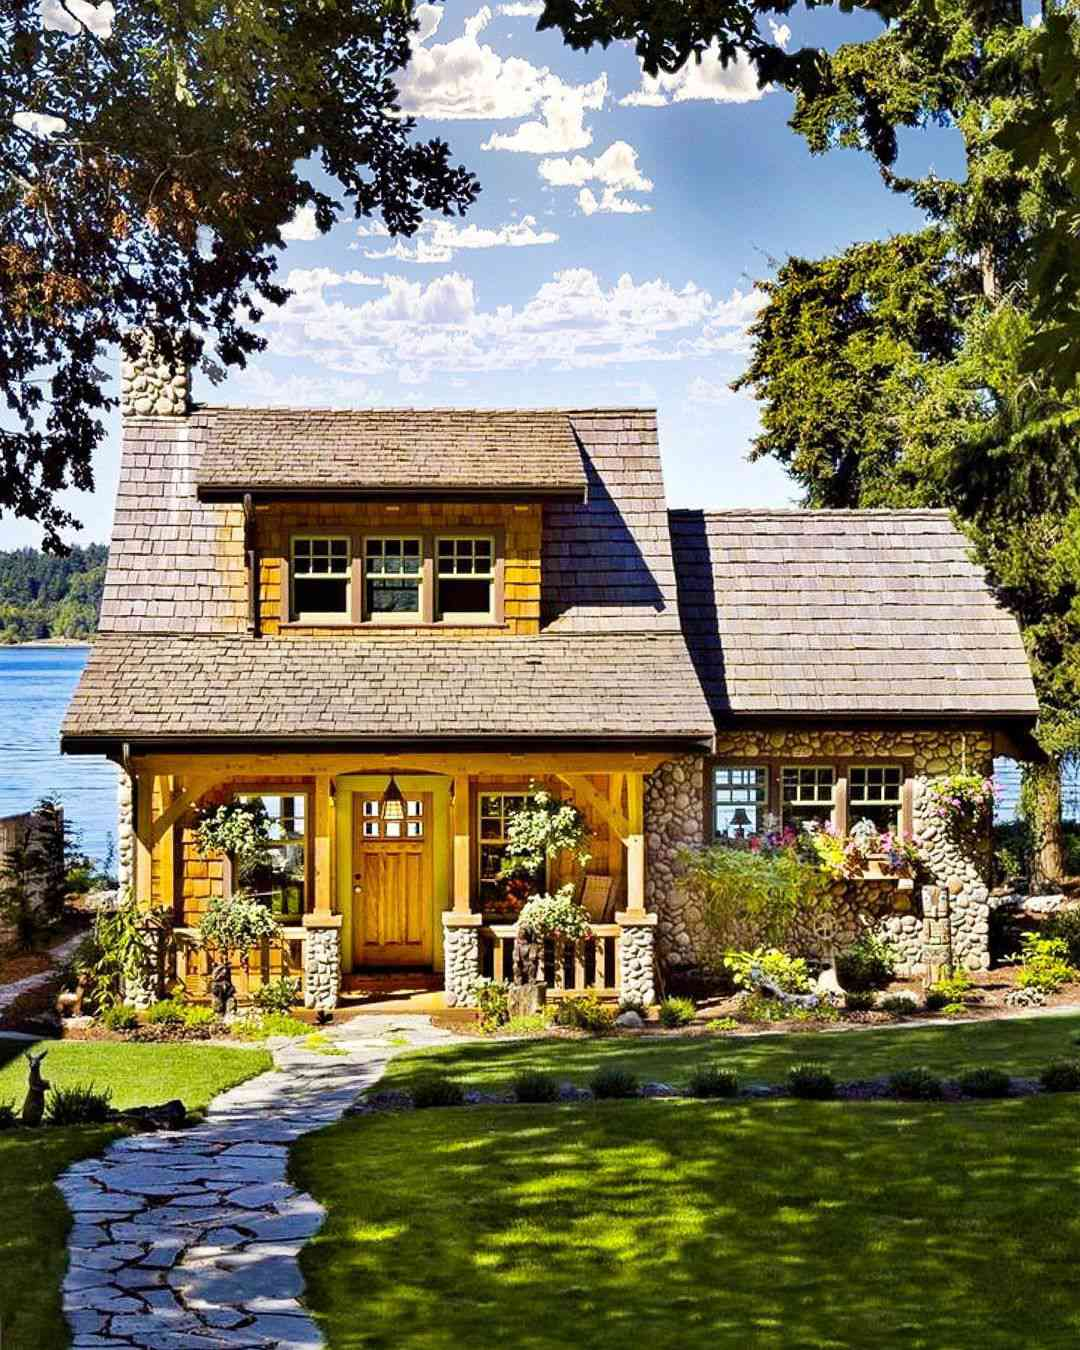 A lakeside arts and crafts style home